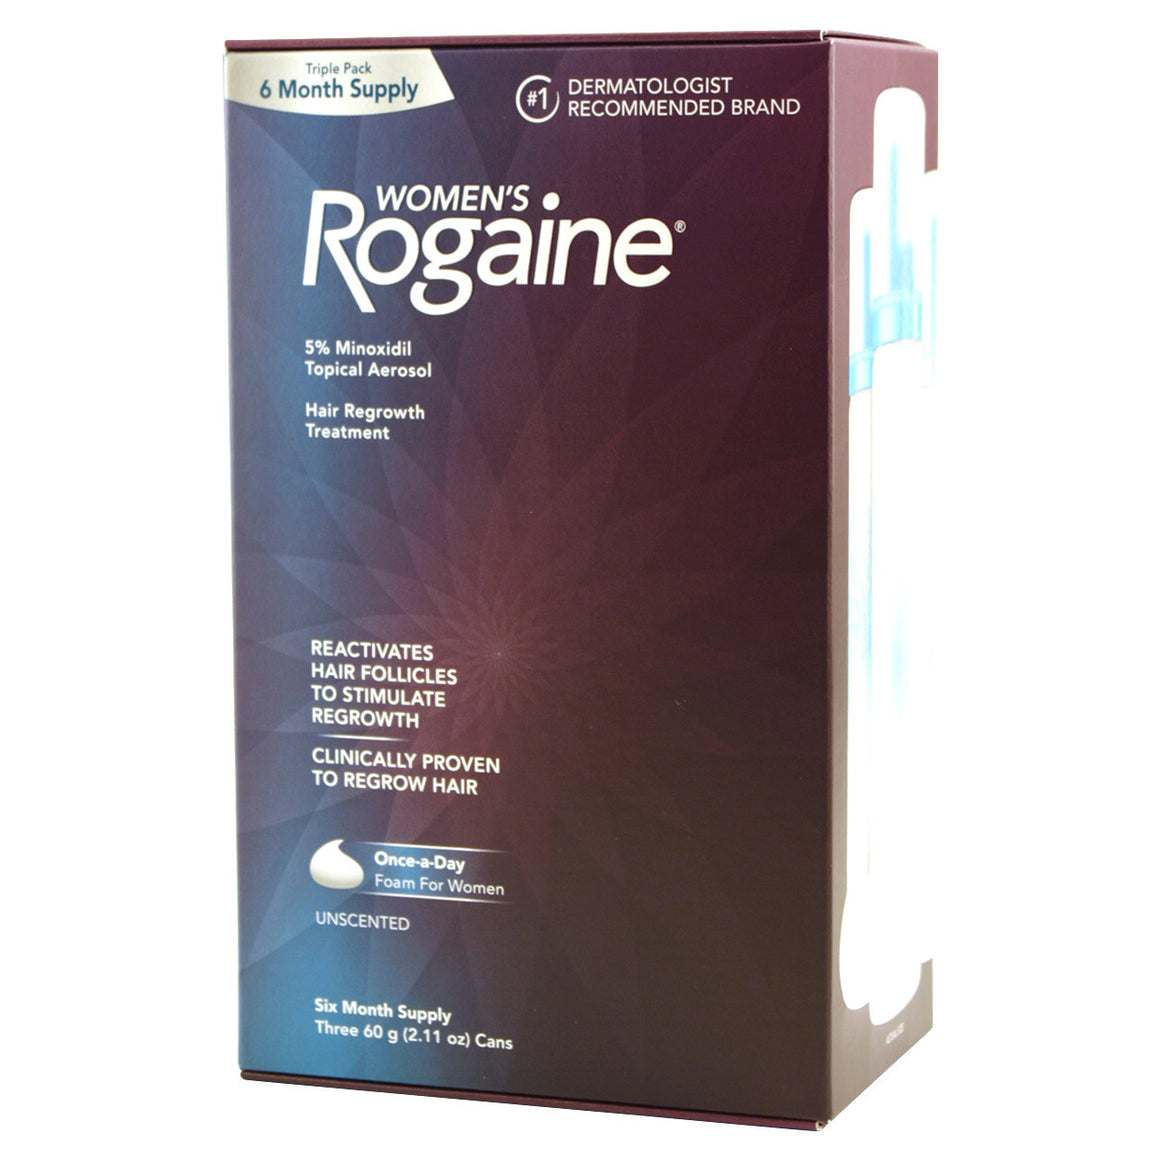 Women's Rogaine Six Month Supply